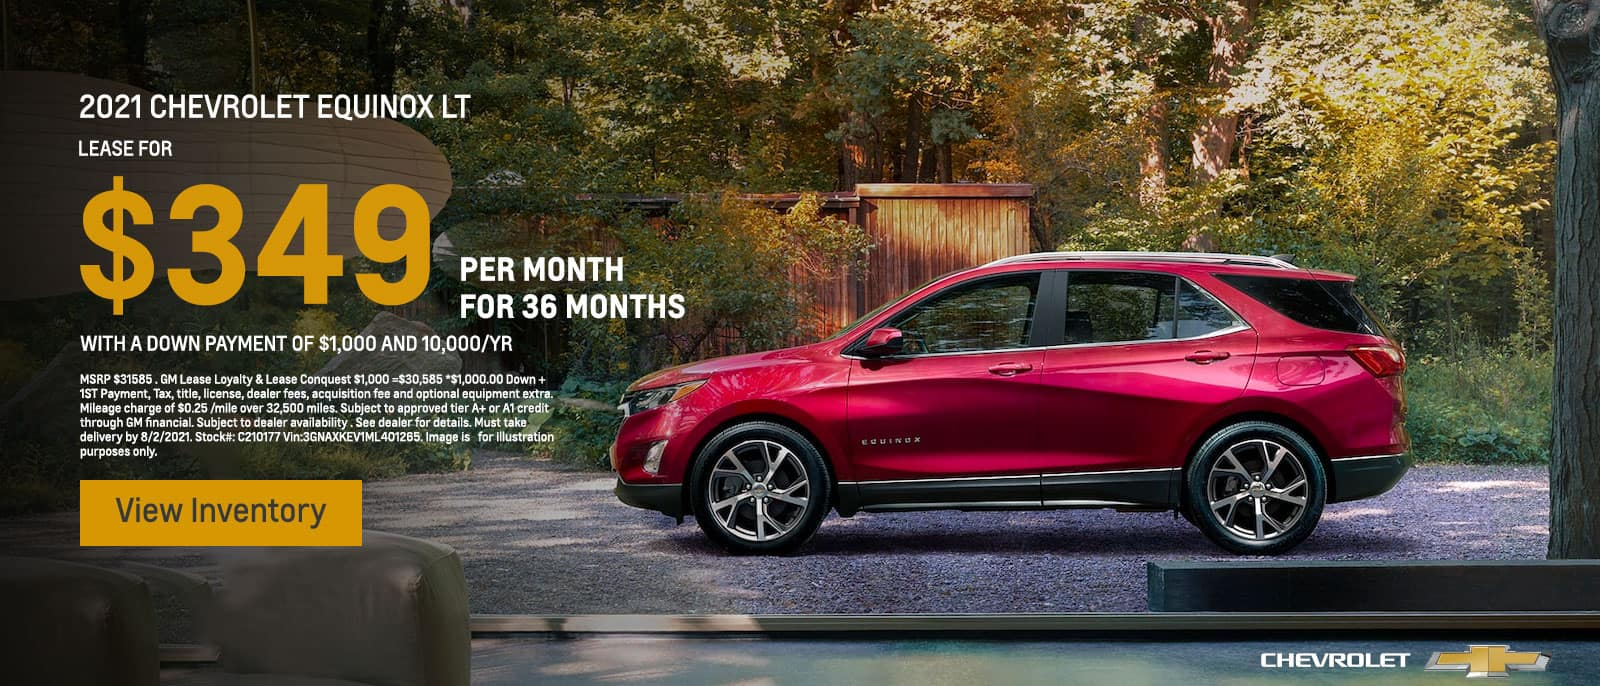 2021 Chevrolet Equinox LT Lease for $349/MO @ 39 MONTHS with a Down Payment of $1,000 and 10,000/YR